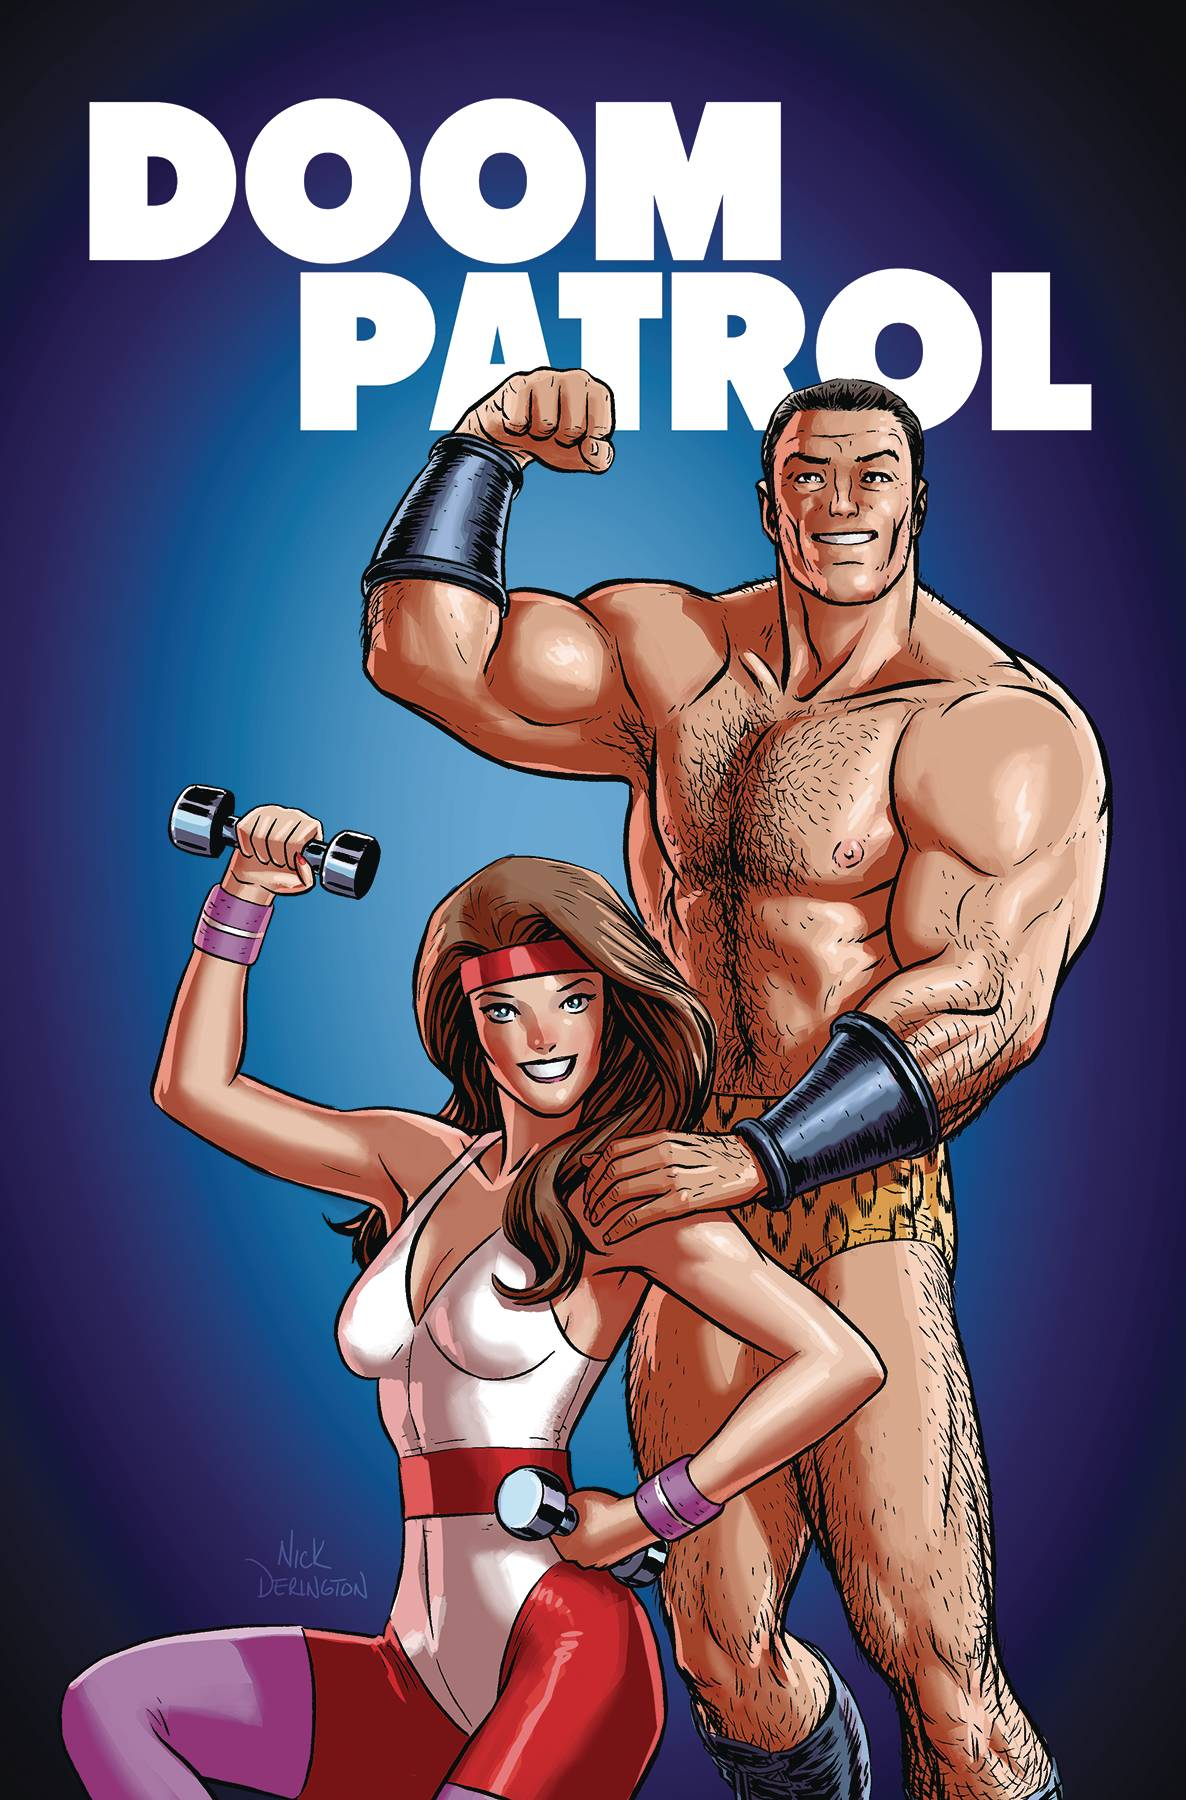 DOOM PATROL WEIGHT OF THE WORLDS 4.jpg